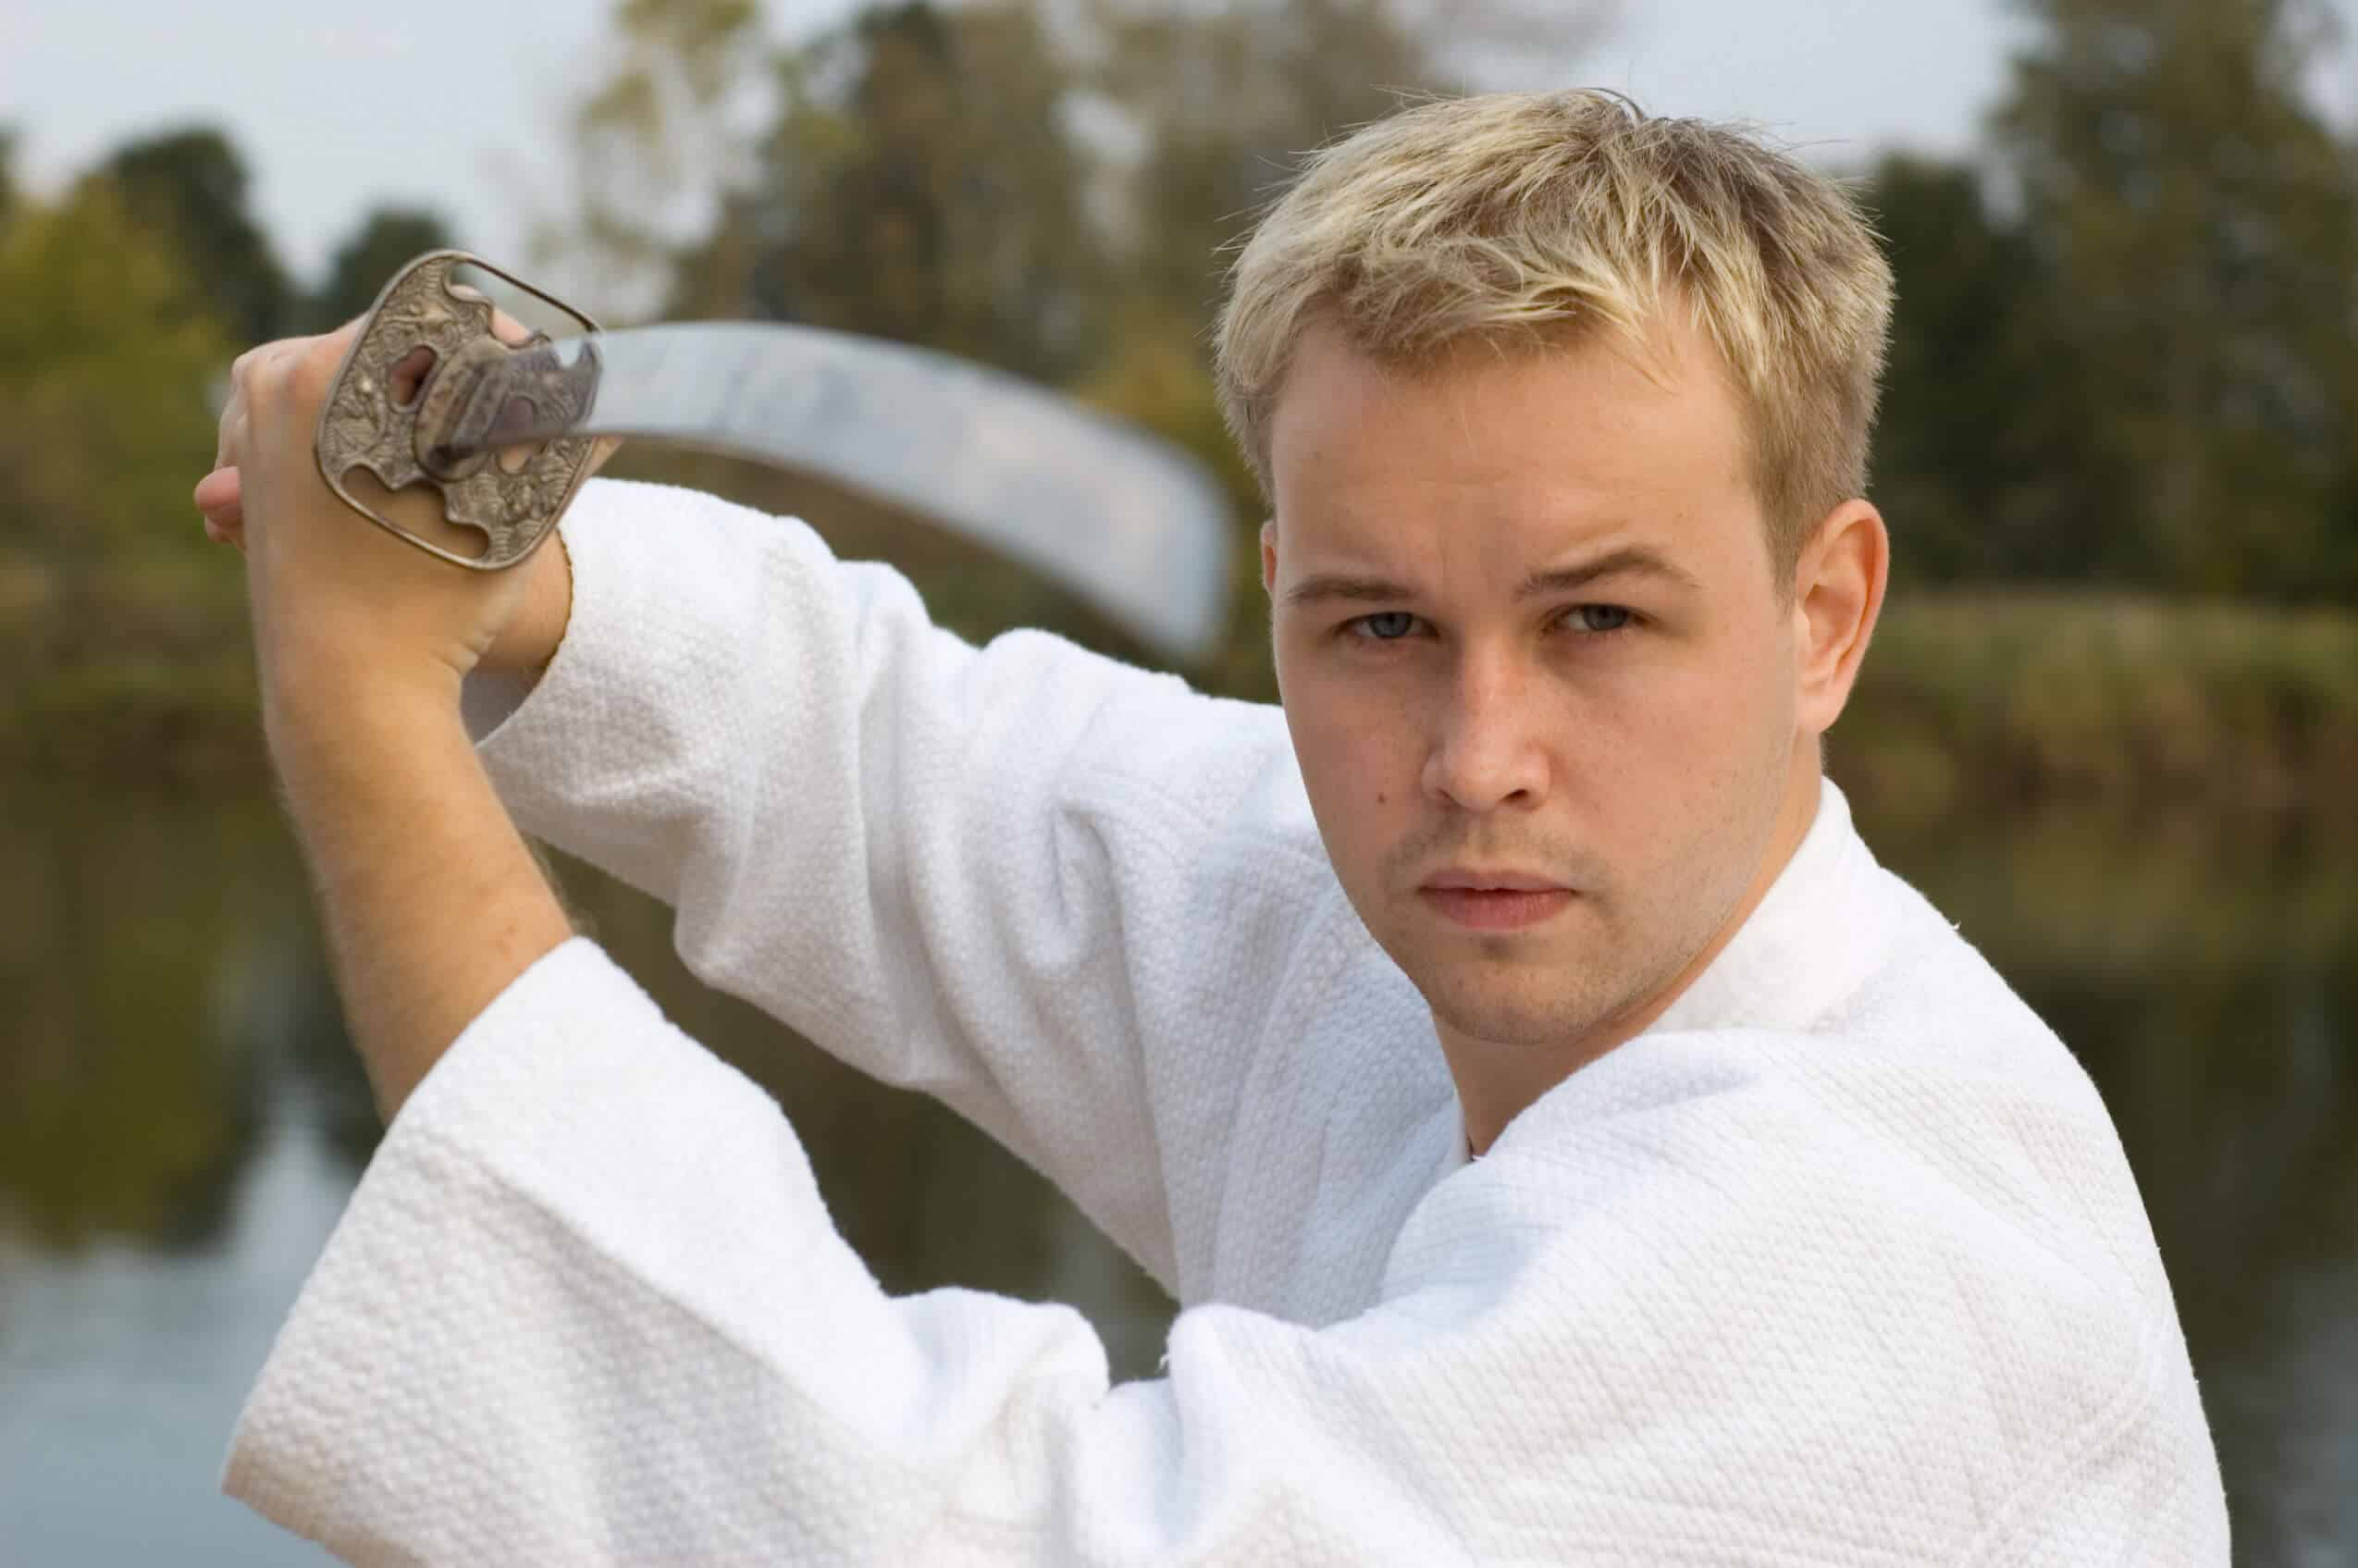 Martial Arts Lessons for Adults in Campbell CA - Samurai Sword Posing Blog